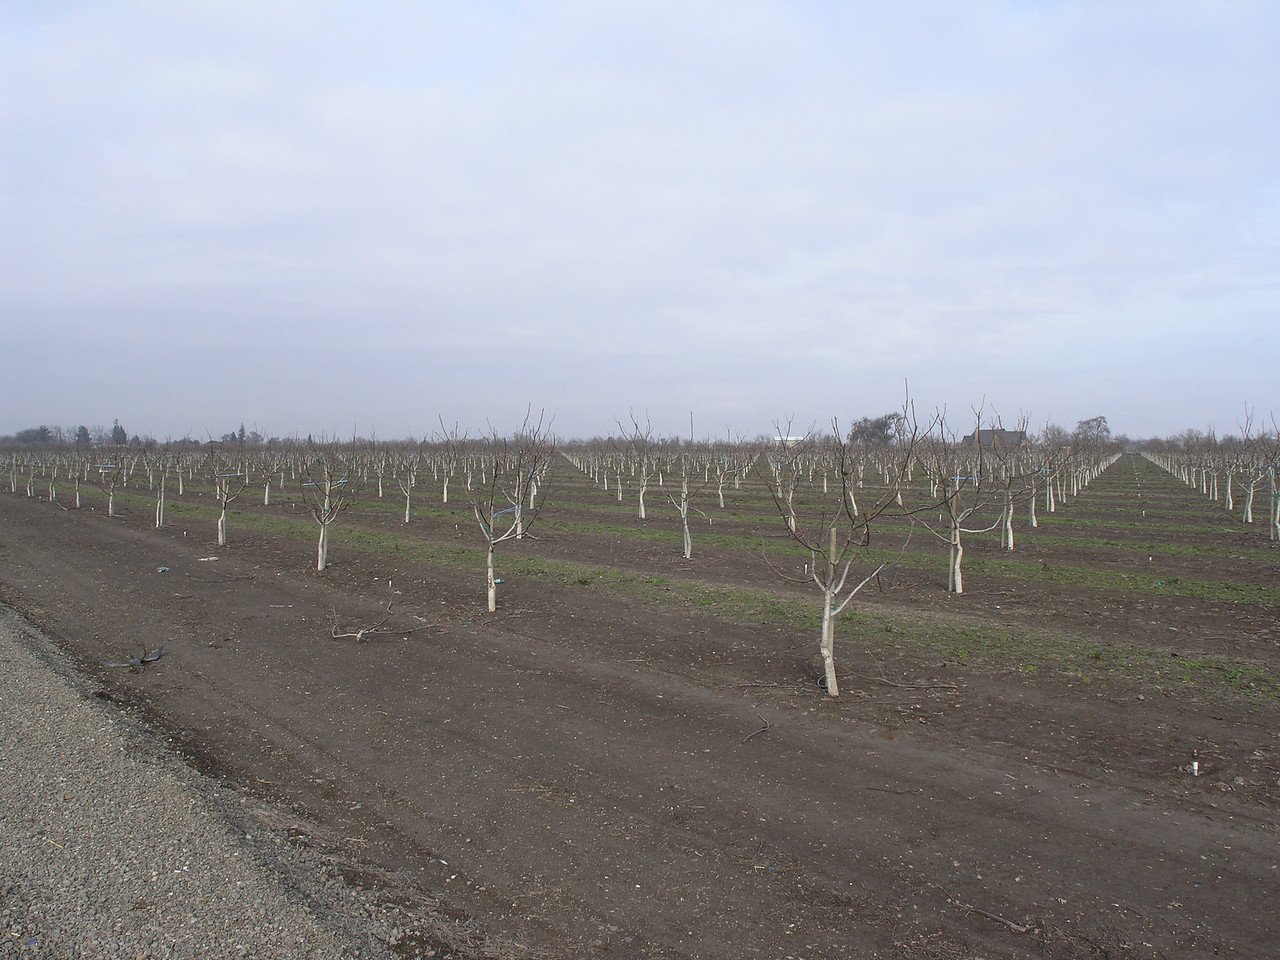 This is a two year old walnut orchard. Note the whitewashed trunkes to protect the english walnut from sunburn.